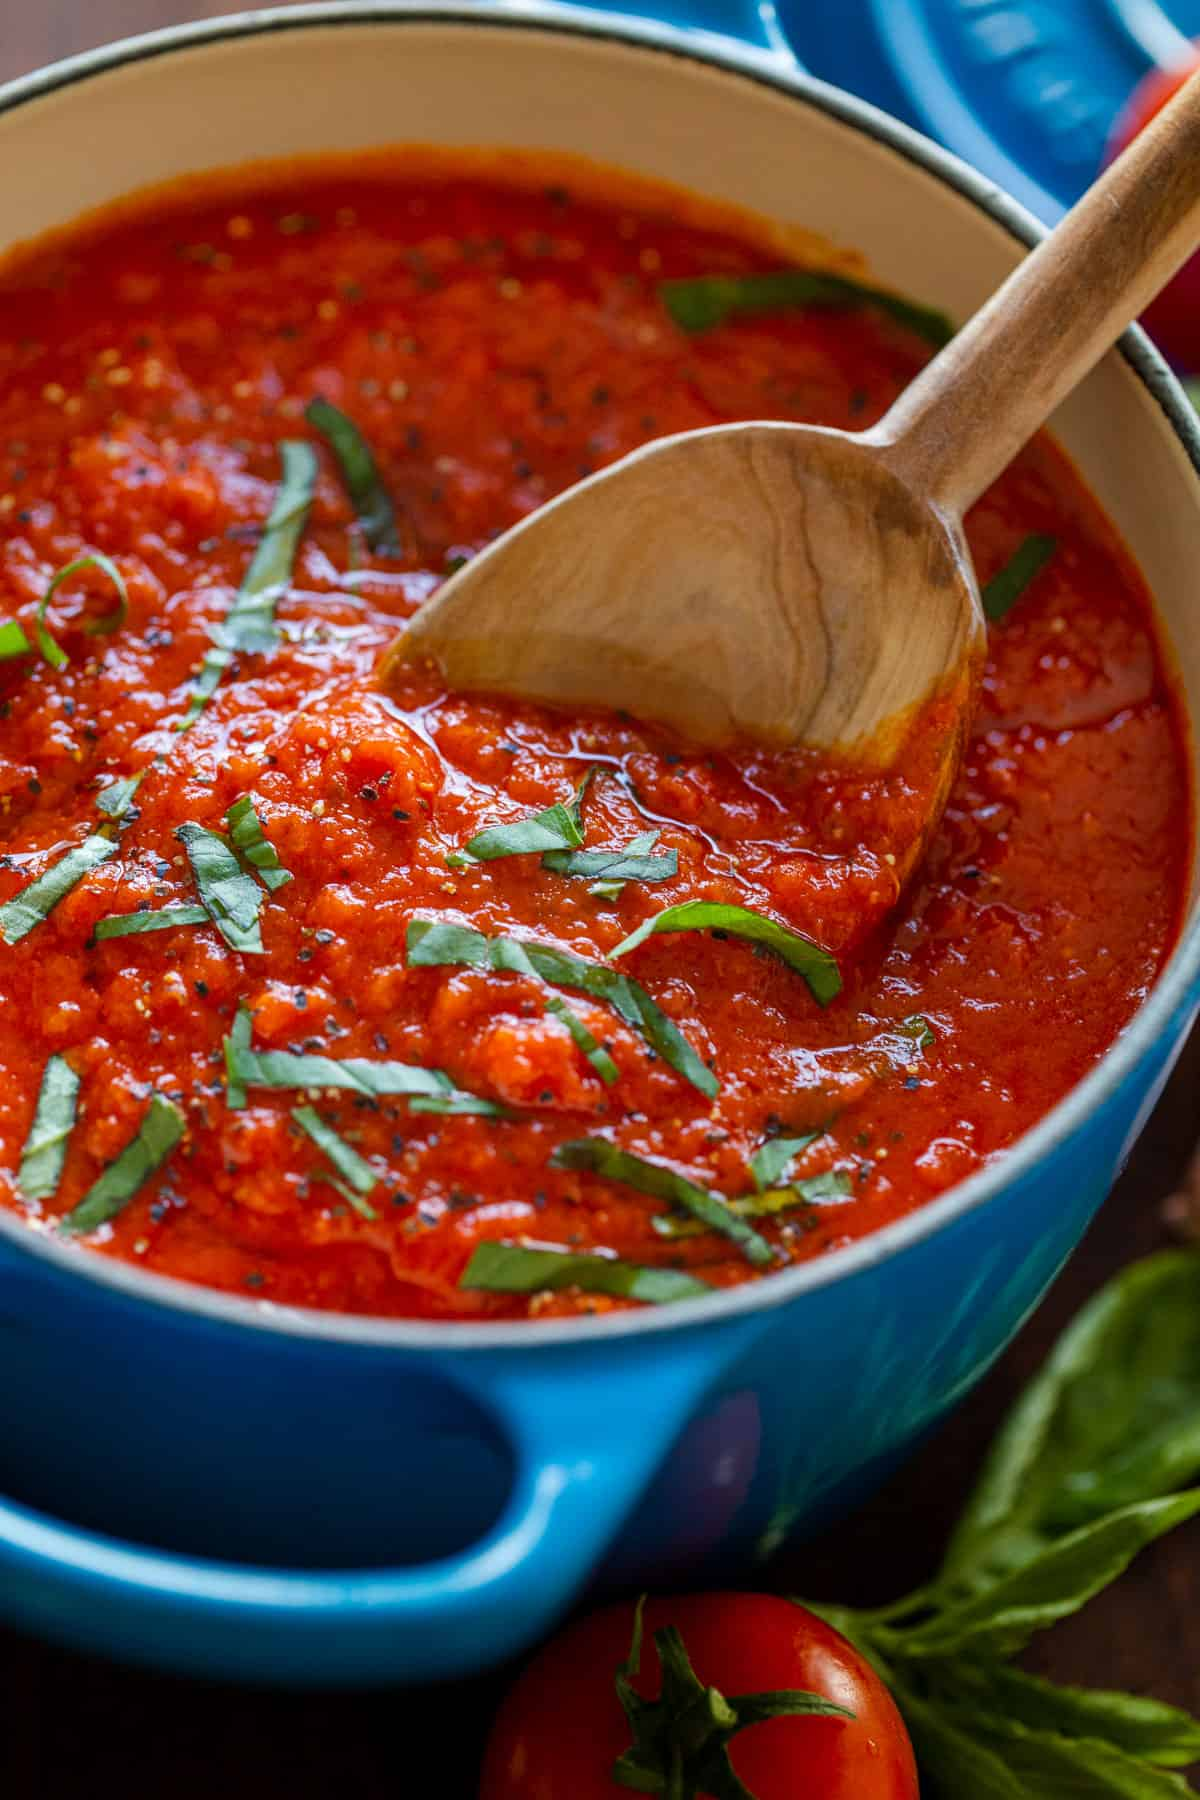 Easy Homemade Marinara Sauce Video Natashaskitchen Com